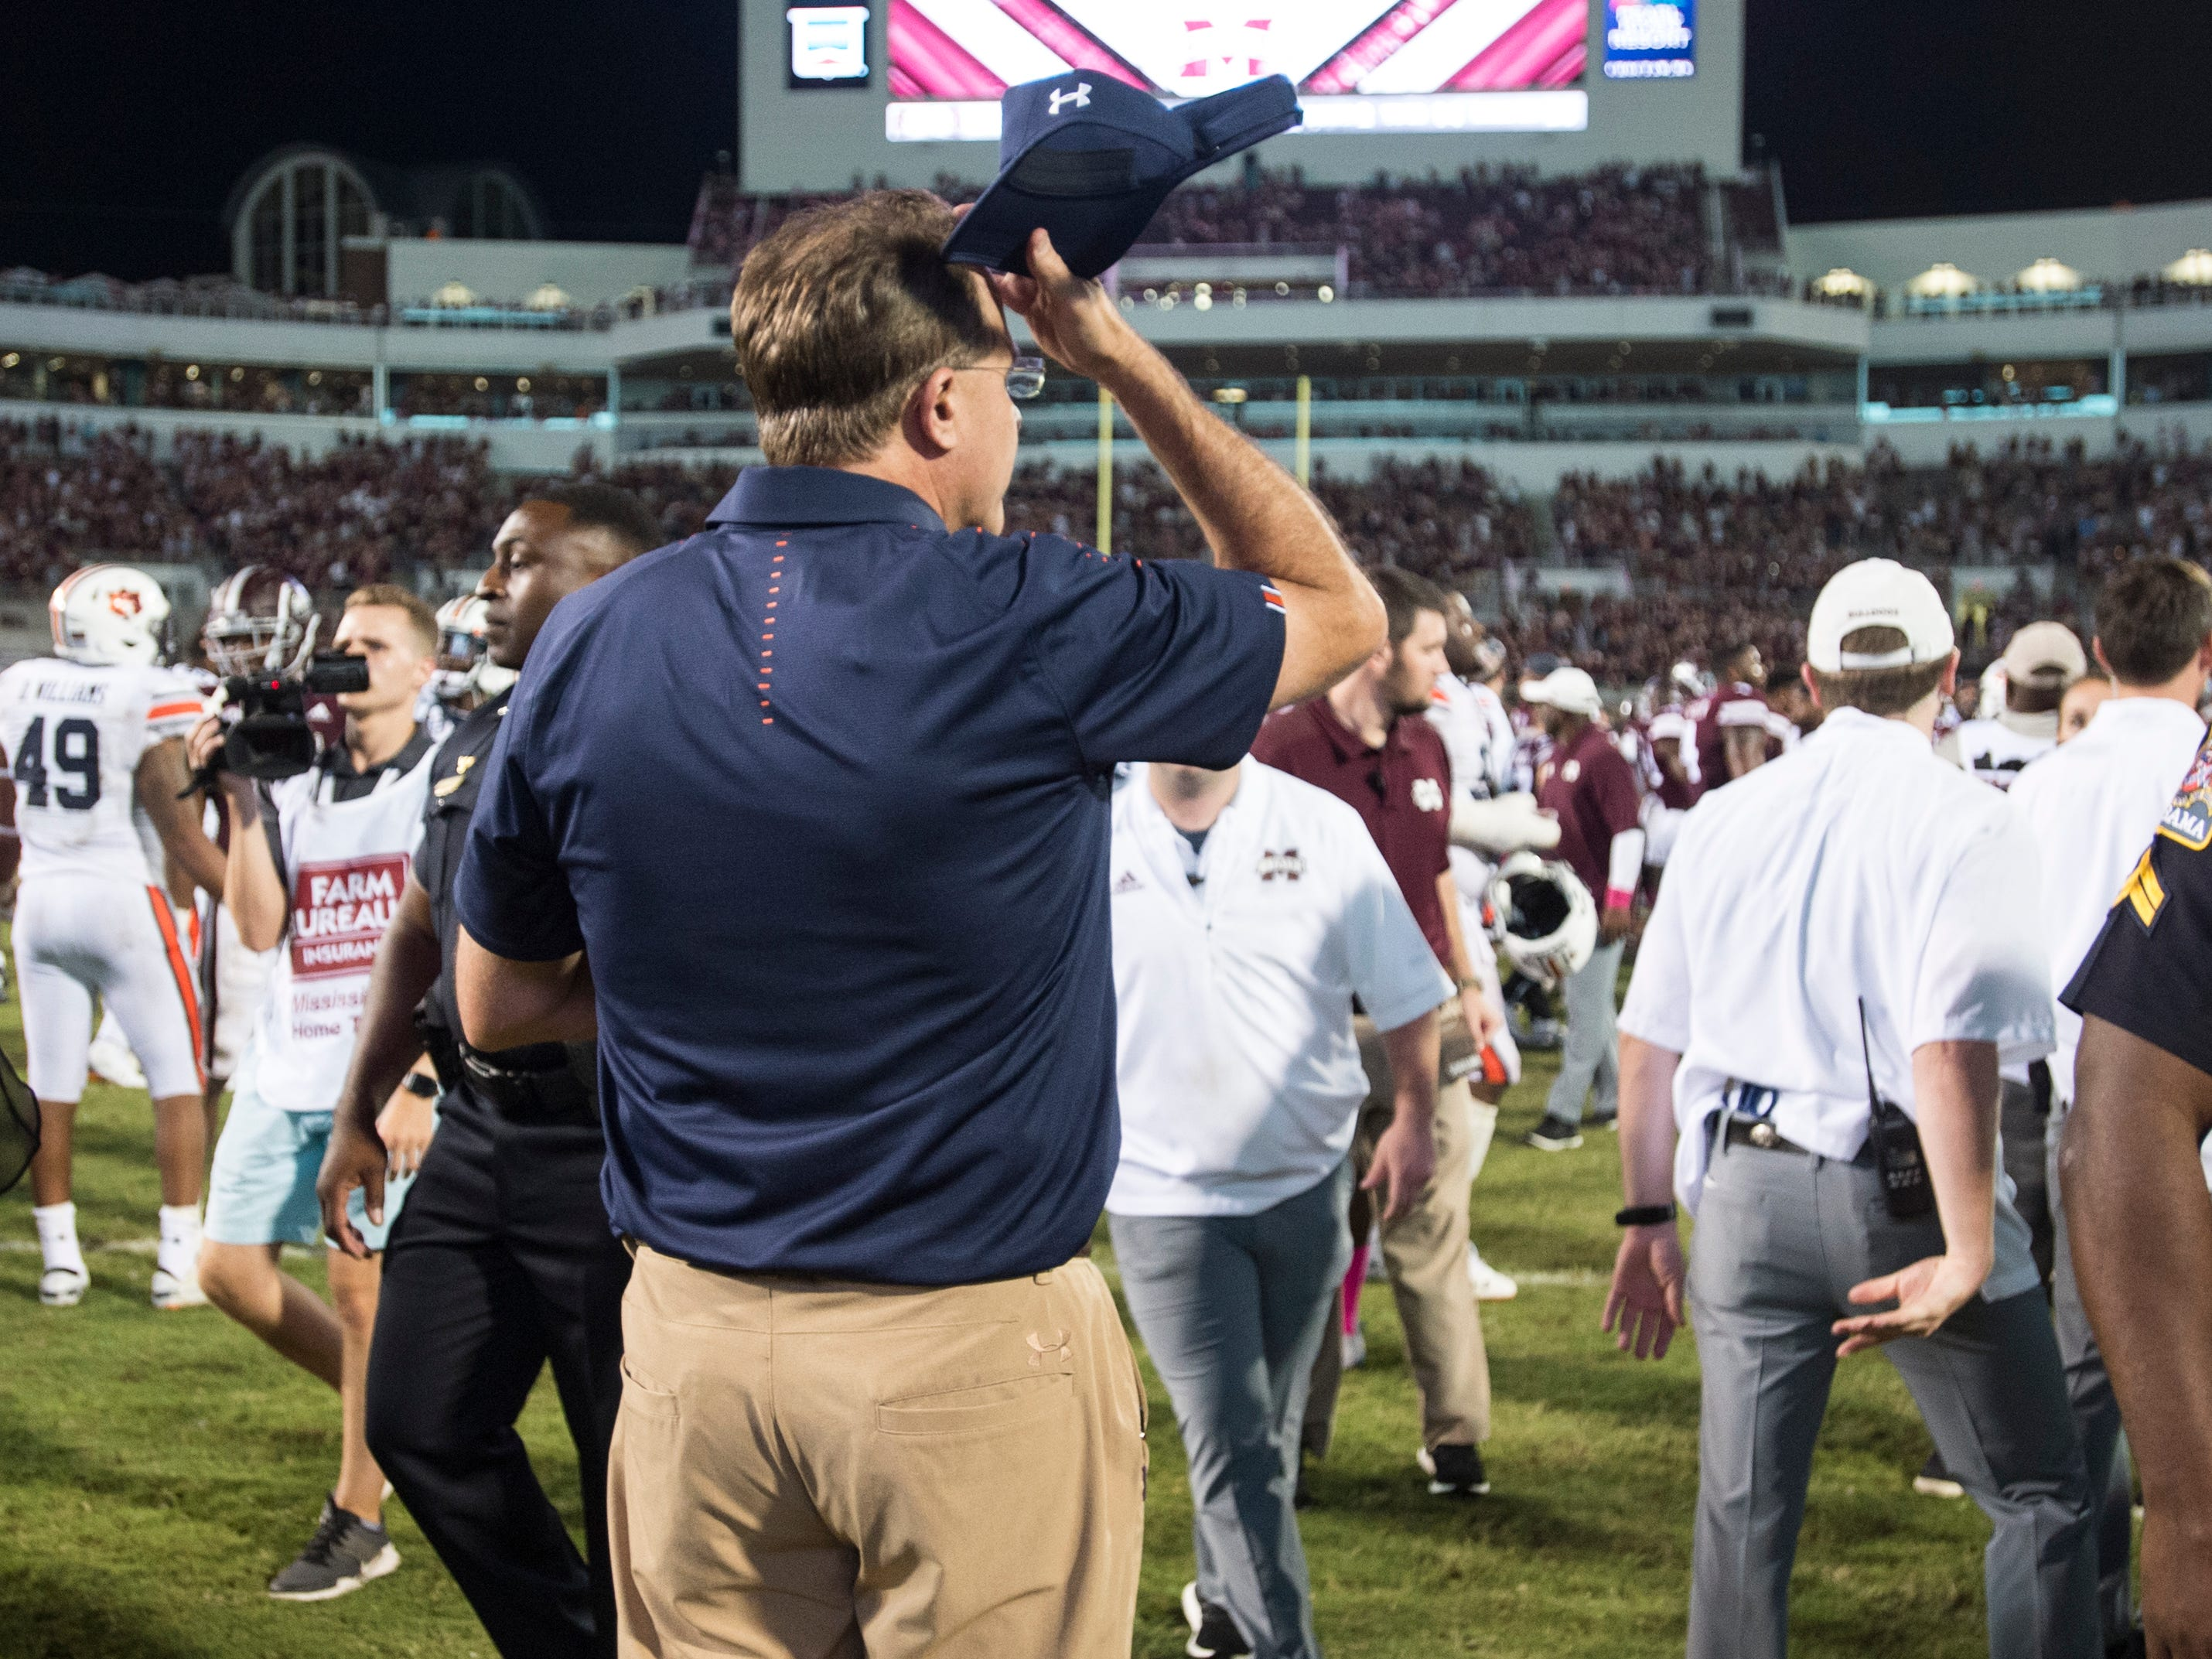 Auburn head coach Gus Malzahn adjusts his hat after the game at Davis Wade Stadium in Starkville, Miss., on Saturday, Oct. 6, 2018. Mississippi State defeated Auburn 23-9.